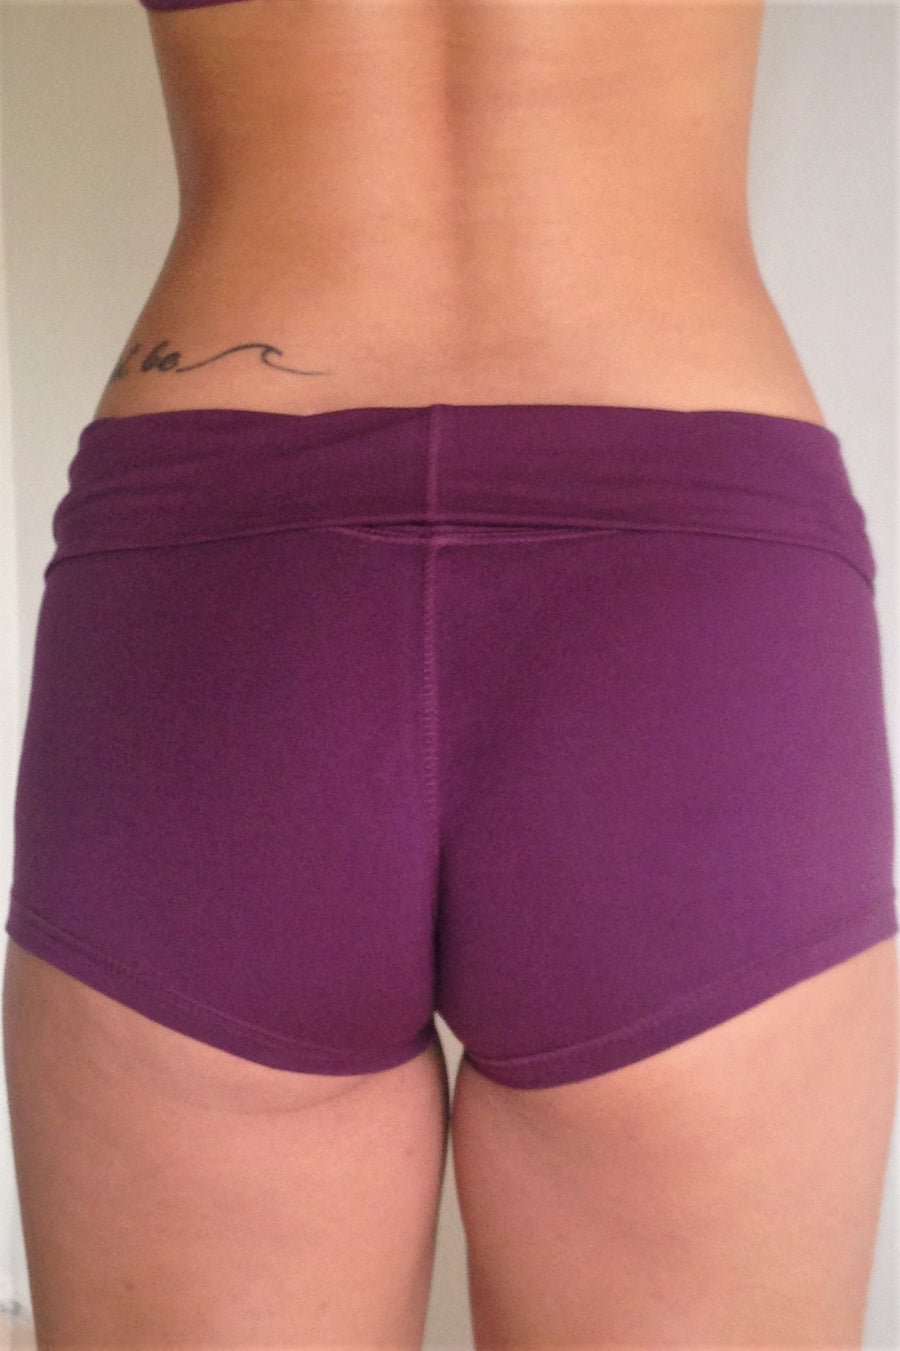 Back view of solid Plum purple yoga shorts with fold over waist, can be worn higher waisted, or low on the hips. Small black Lotus Flower embroidery. 90% cotton 10% spandex.